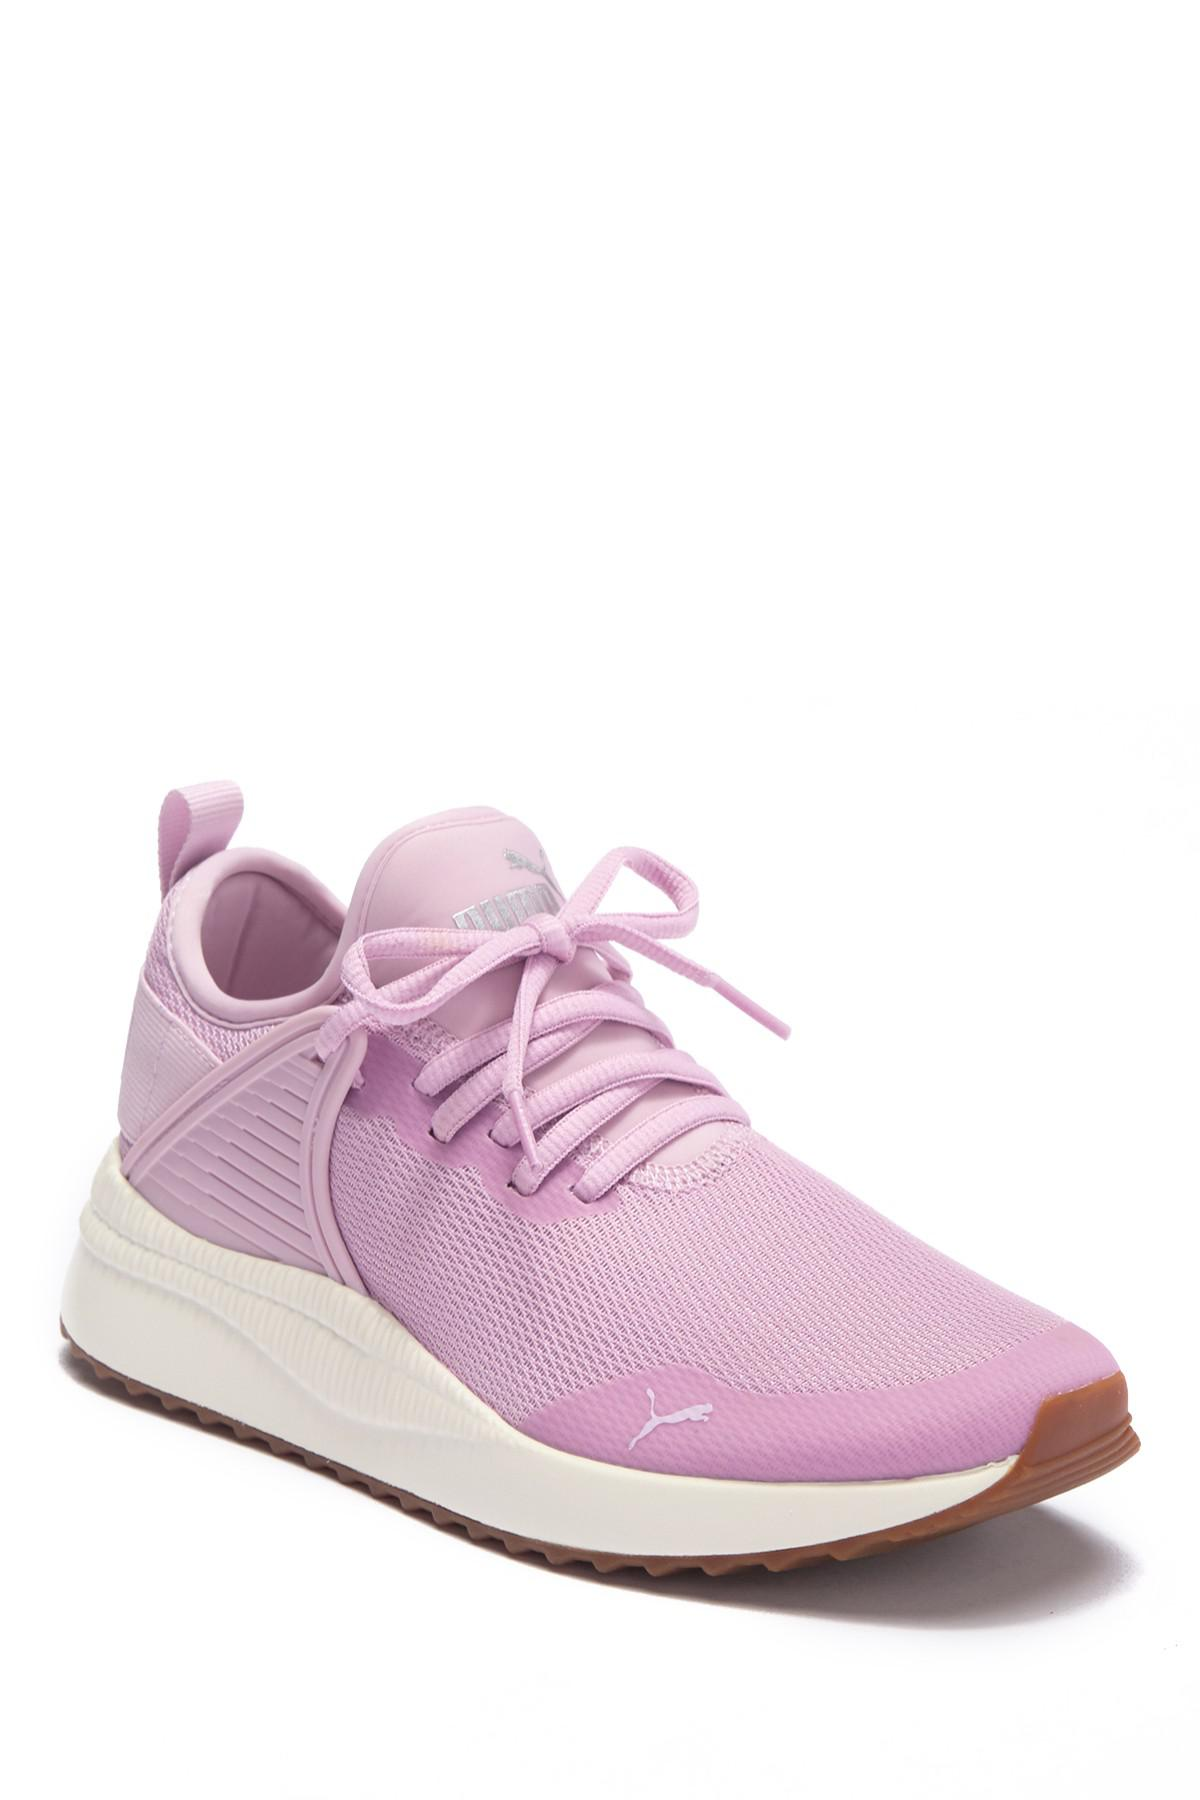 Lyst - PUMA Pacer Next Cage Sneakers - Save 30% a2473c804